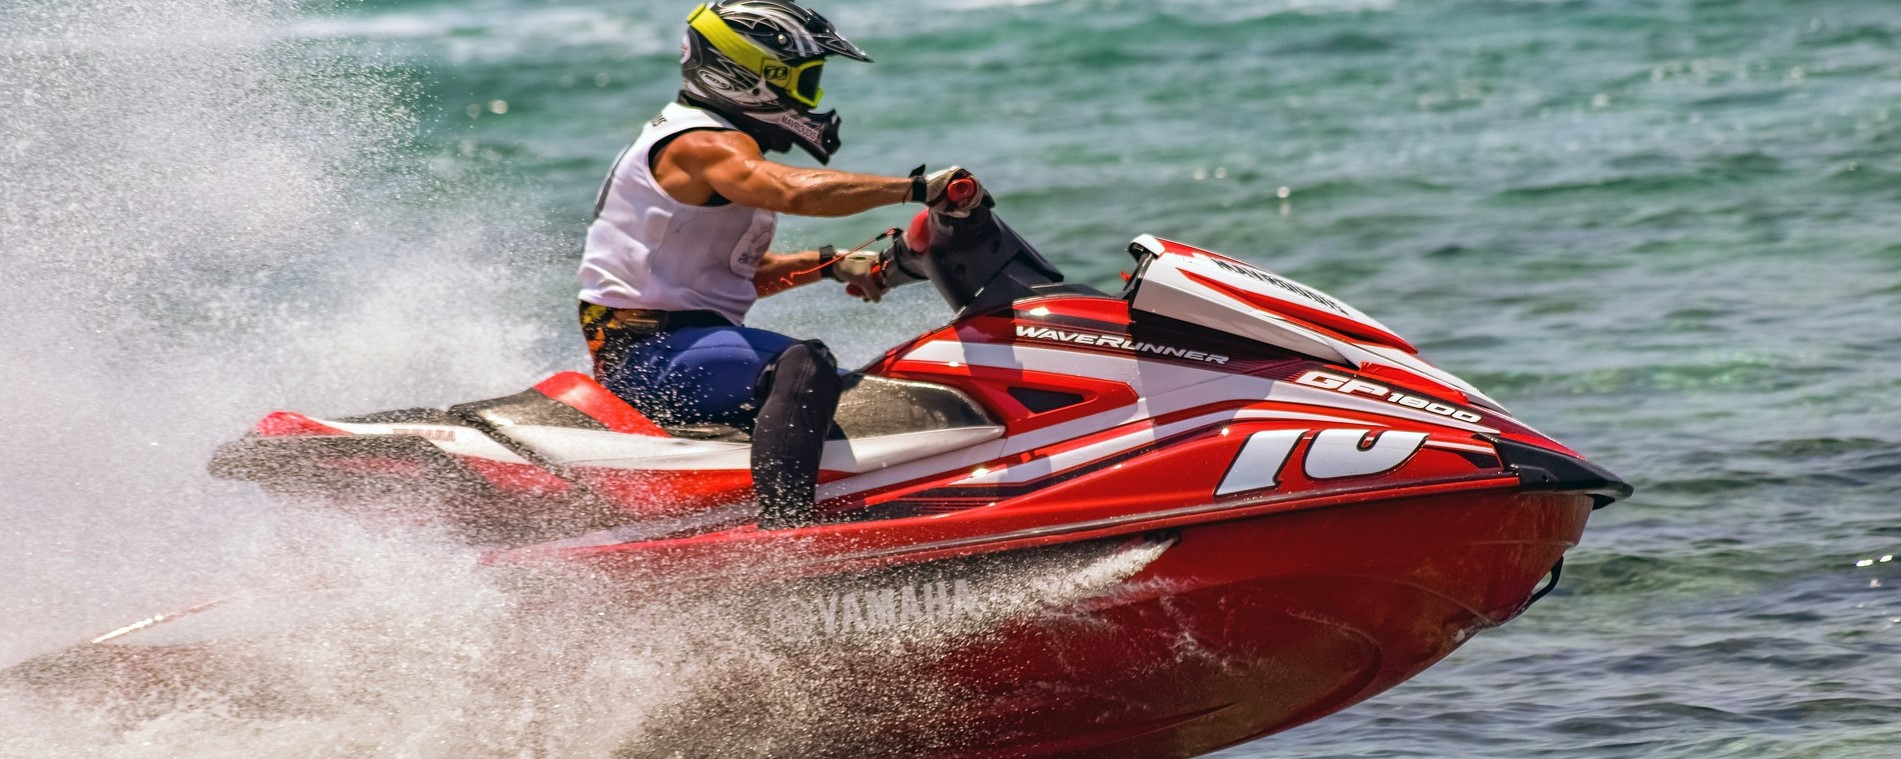 Jet Ski Speed Action | Breast Cancer Car Donations